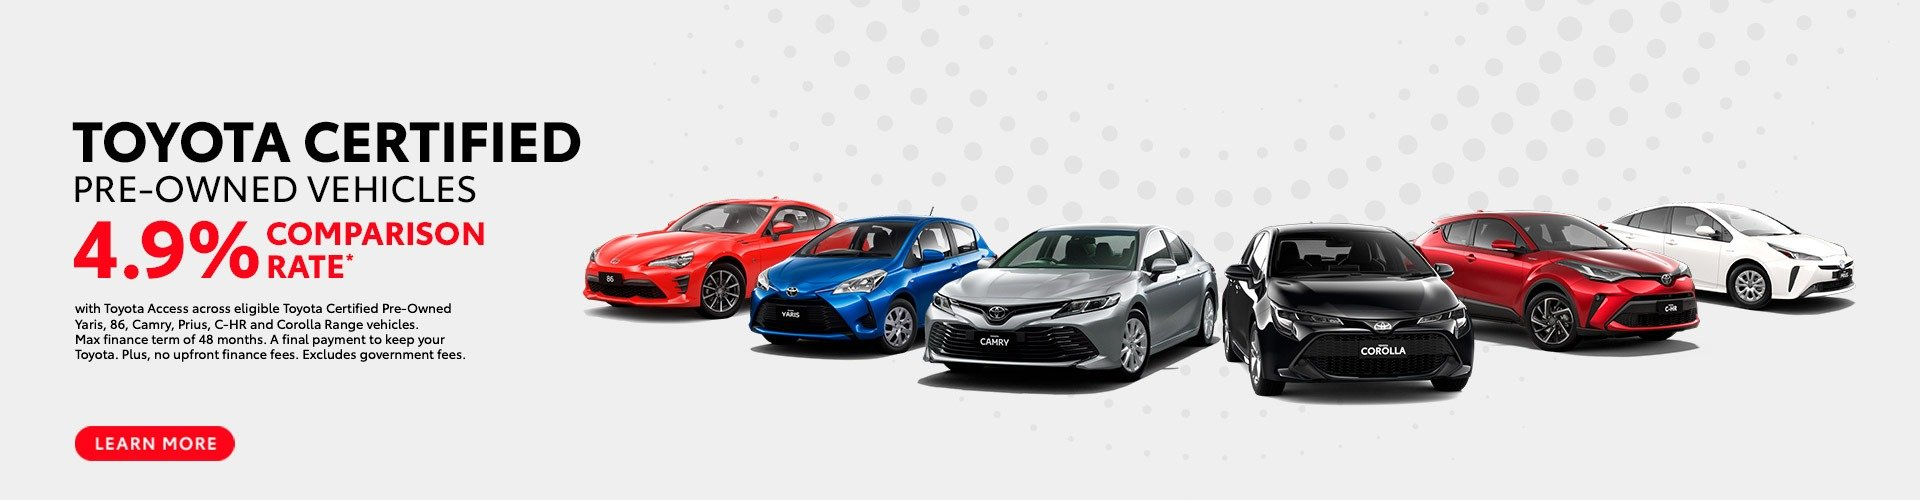 Werribee Toyota - Certified Pre-Owned Vehicle 4.9% Finance Offer